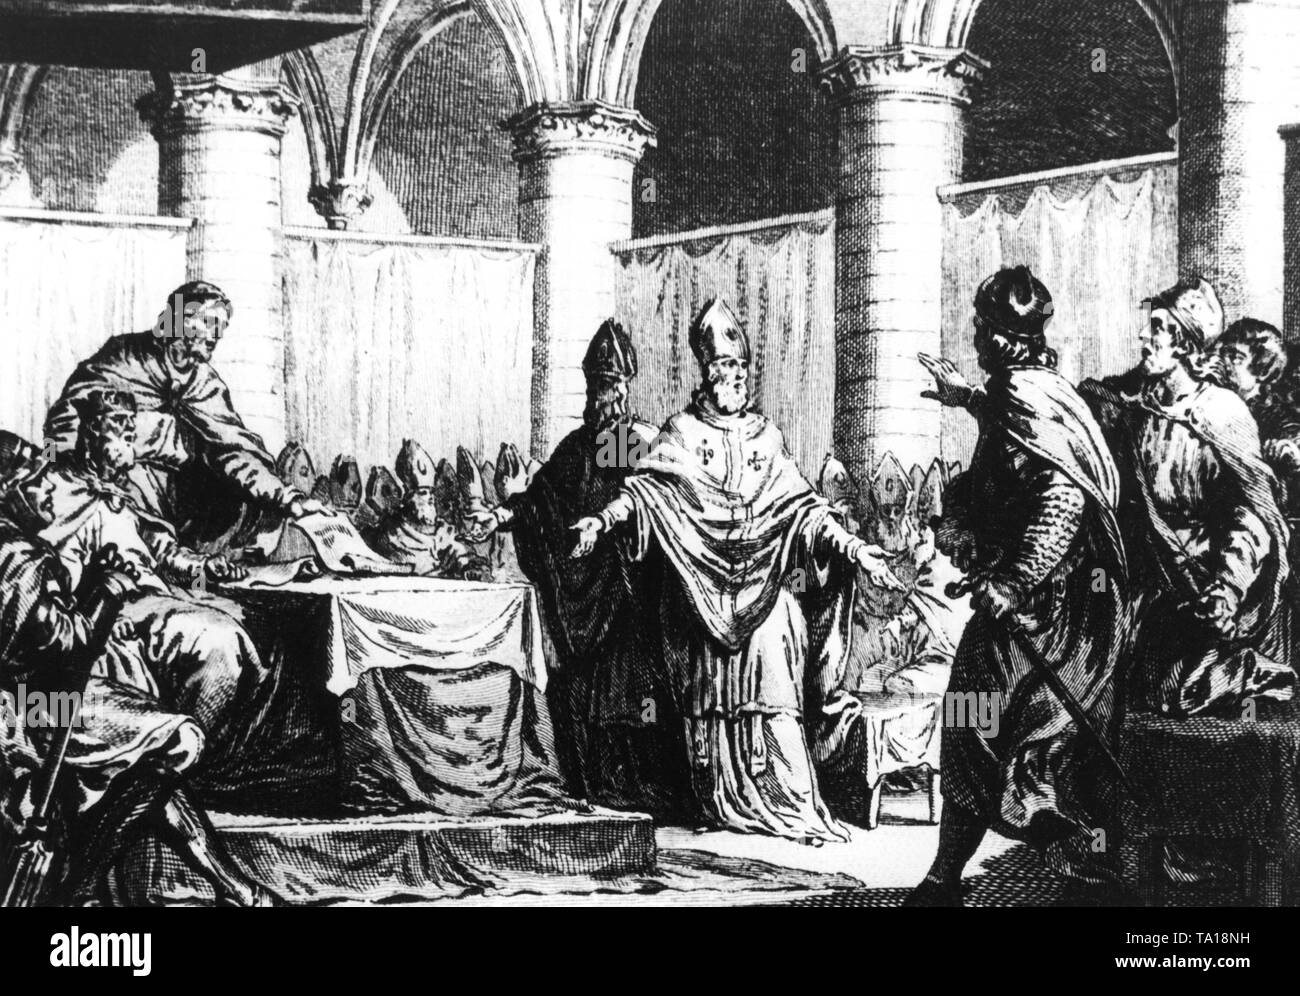 Pippin III and his brother Carloman, Mayor of the Palace of the Kingdom of the Franks, regulate at a church meeting the legal authority of the Church. The Church is given the right to demand the tithe of its subjects. By the 6th century, the office of the mayor of the palace is endowed with more and more power, and thus more and more important in the Frankish Empire. An engraving from Paris from around 1780 from the workshop of Jacques-Philippe Le Bas. - Stock Image